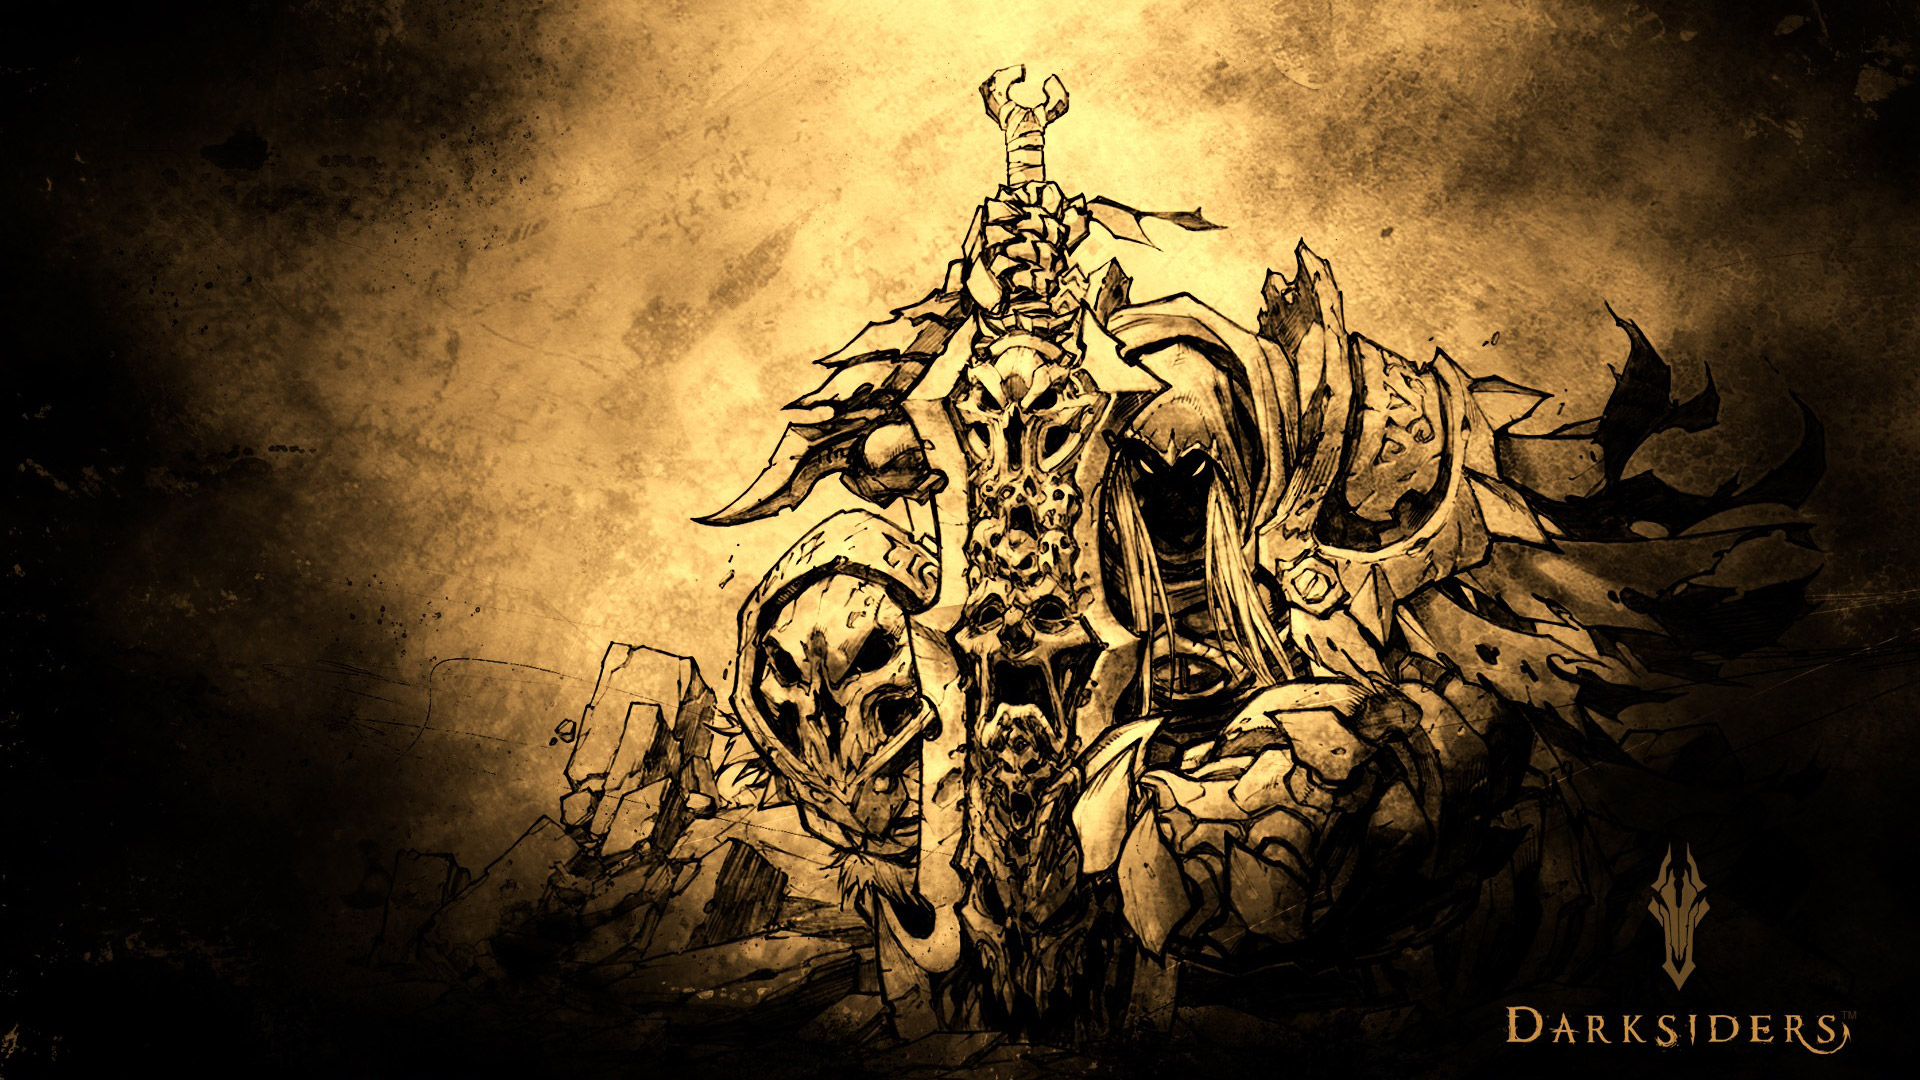 Darksiders Wallpaper in 1920x1080